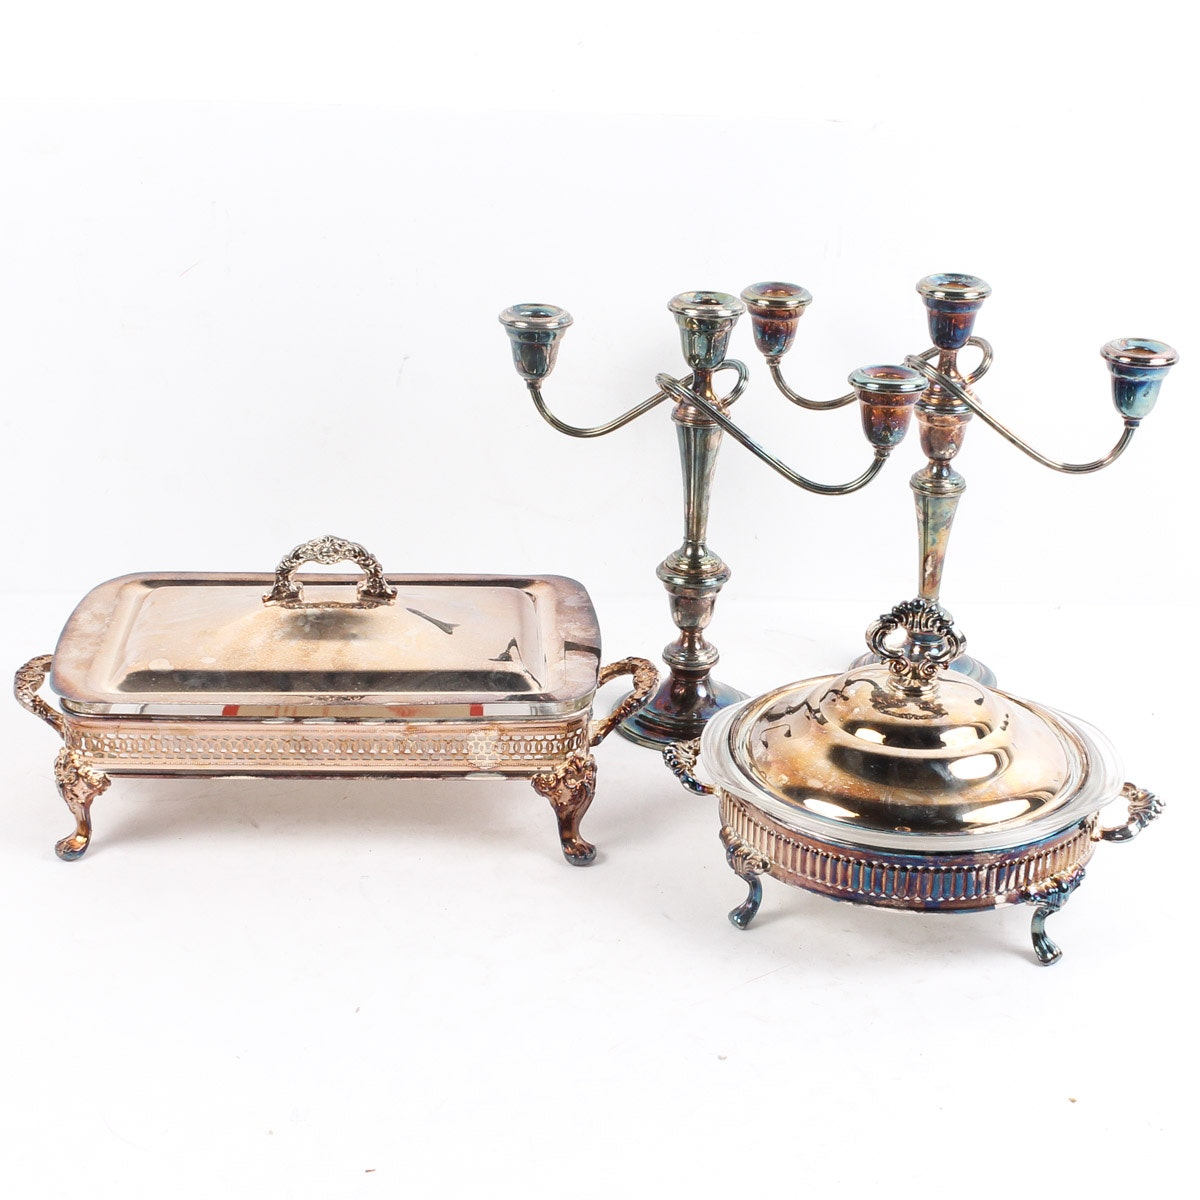 Silver Plate Decor and Tableware Including Gorham Mfg. Co.